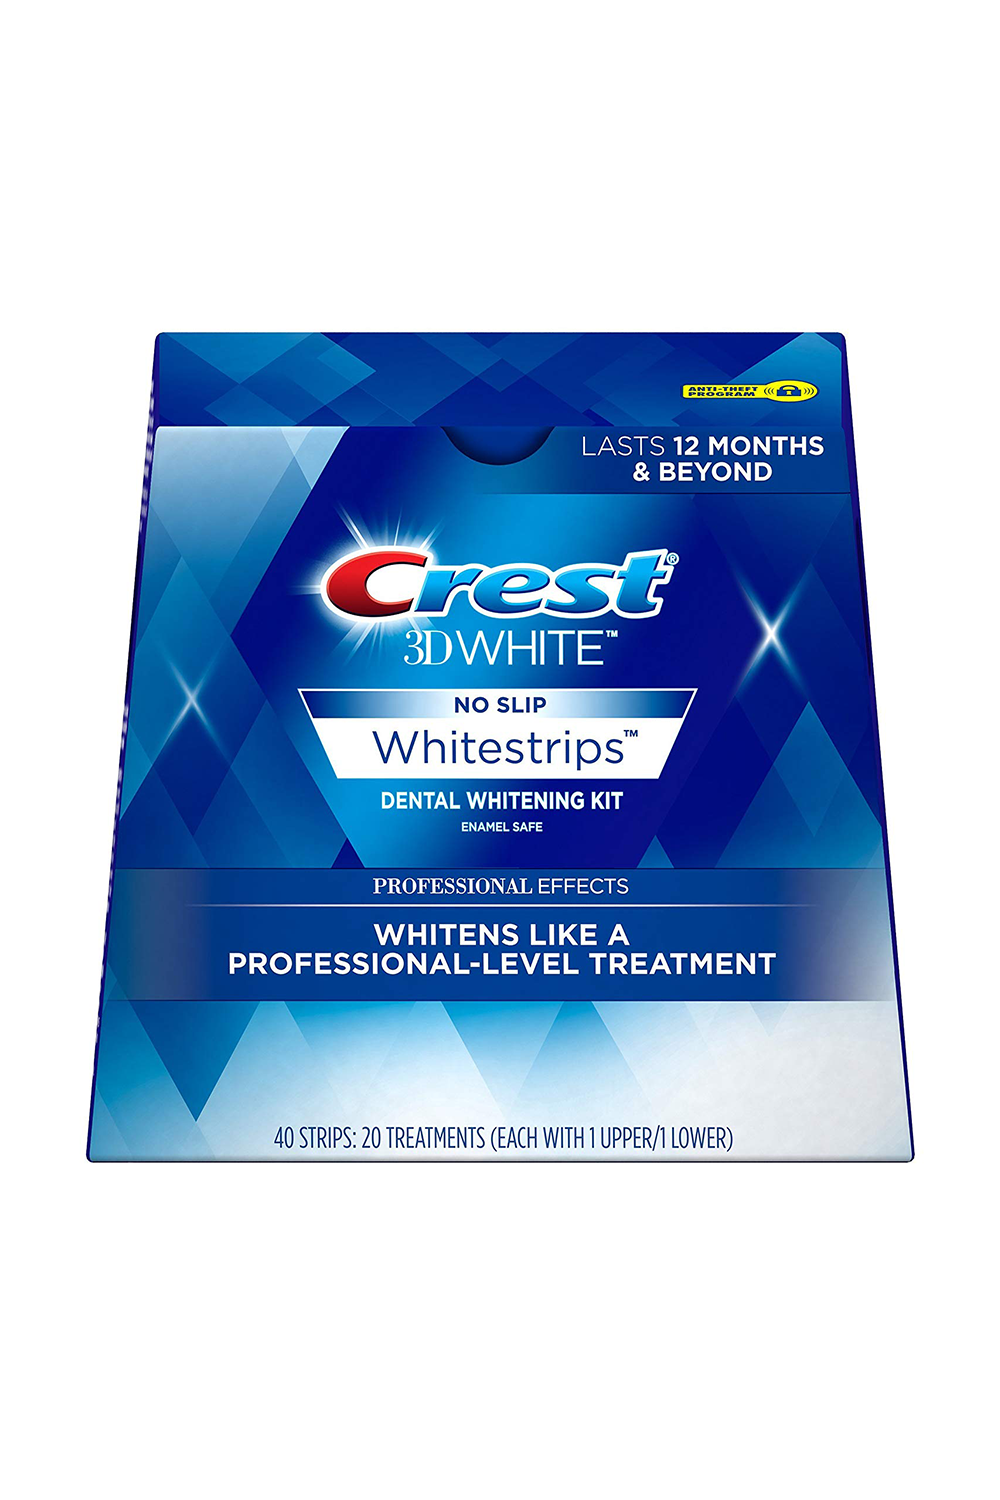 8 Of The Best Teeth Whitening Products To Try At Home